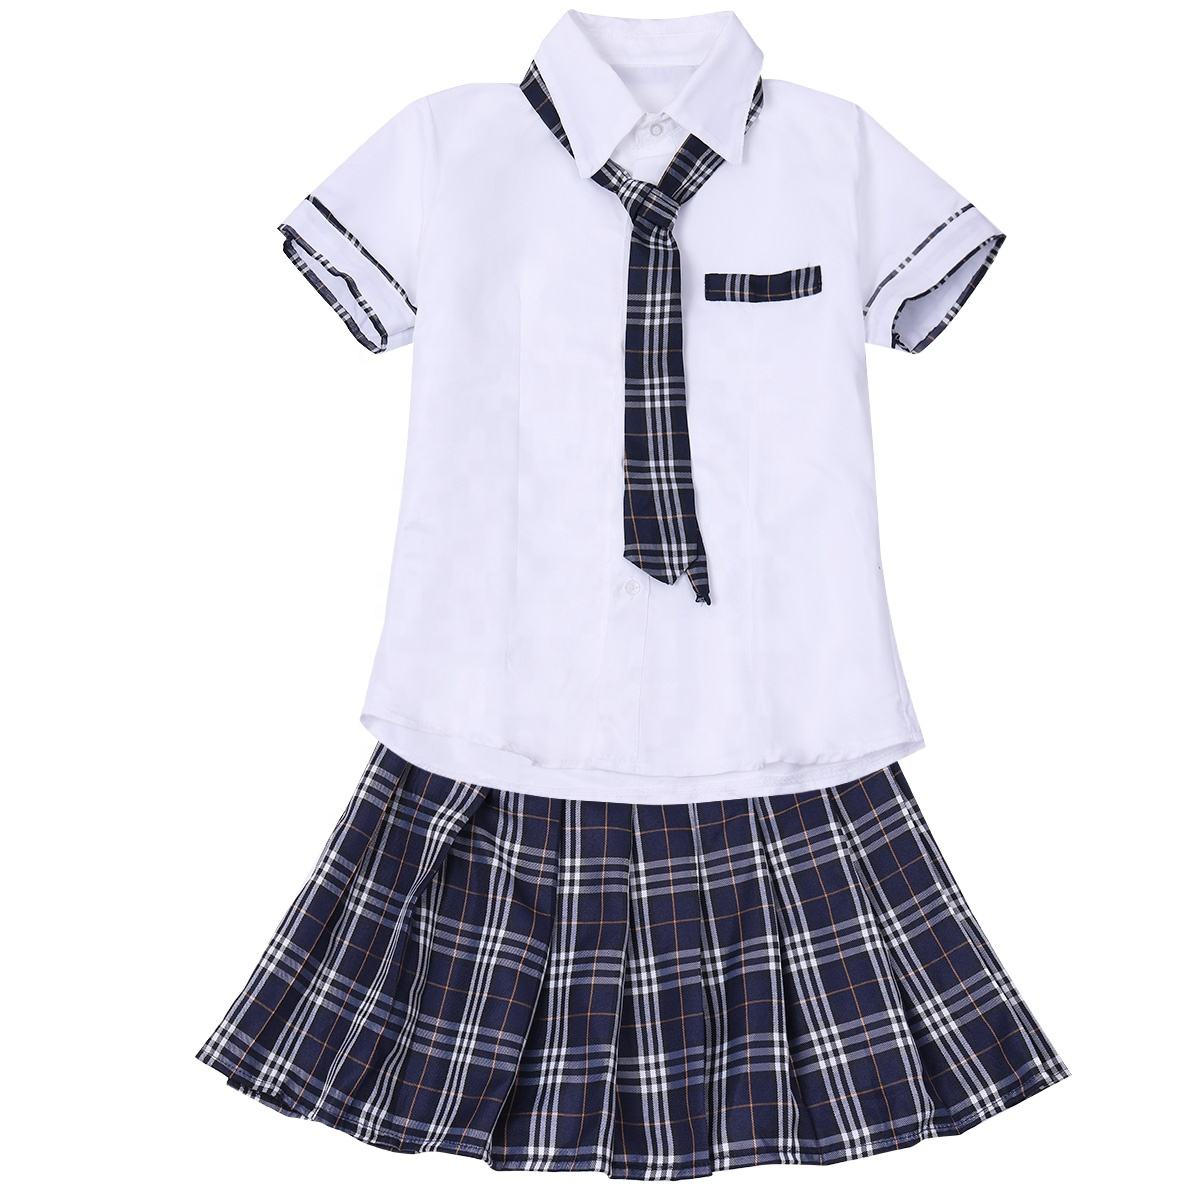 Vrouwen En Meisjes <span class=keywords><strong>School</strong></span> Uniformen Sexy Collage Student Sailor Party Cosplay <span class=keywords><strong>Kostuum</strong></span> Korte Mouw Shirt Met Plaid Rok Tie Set